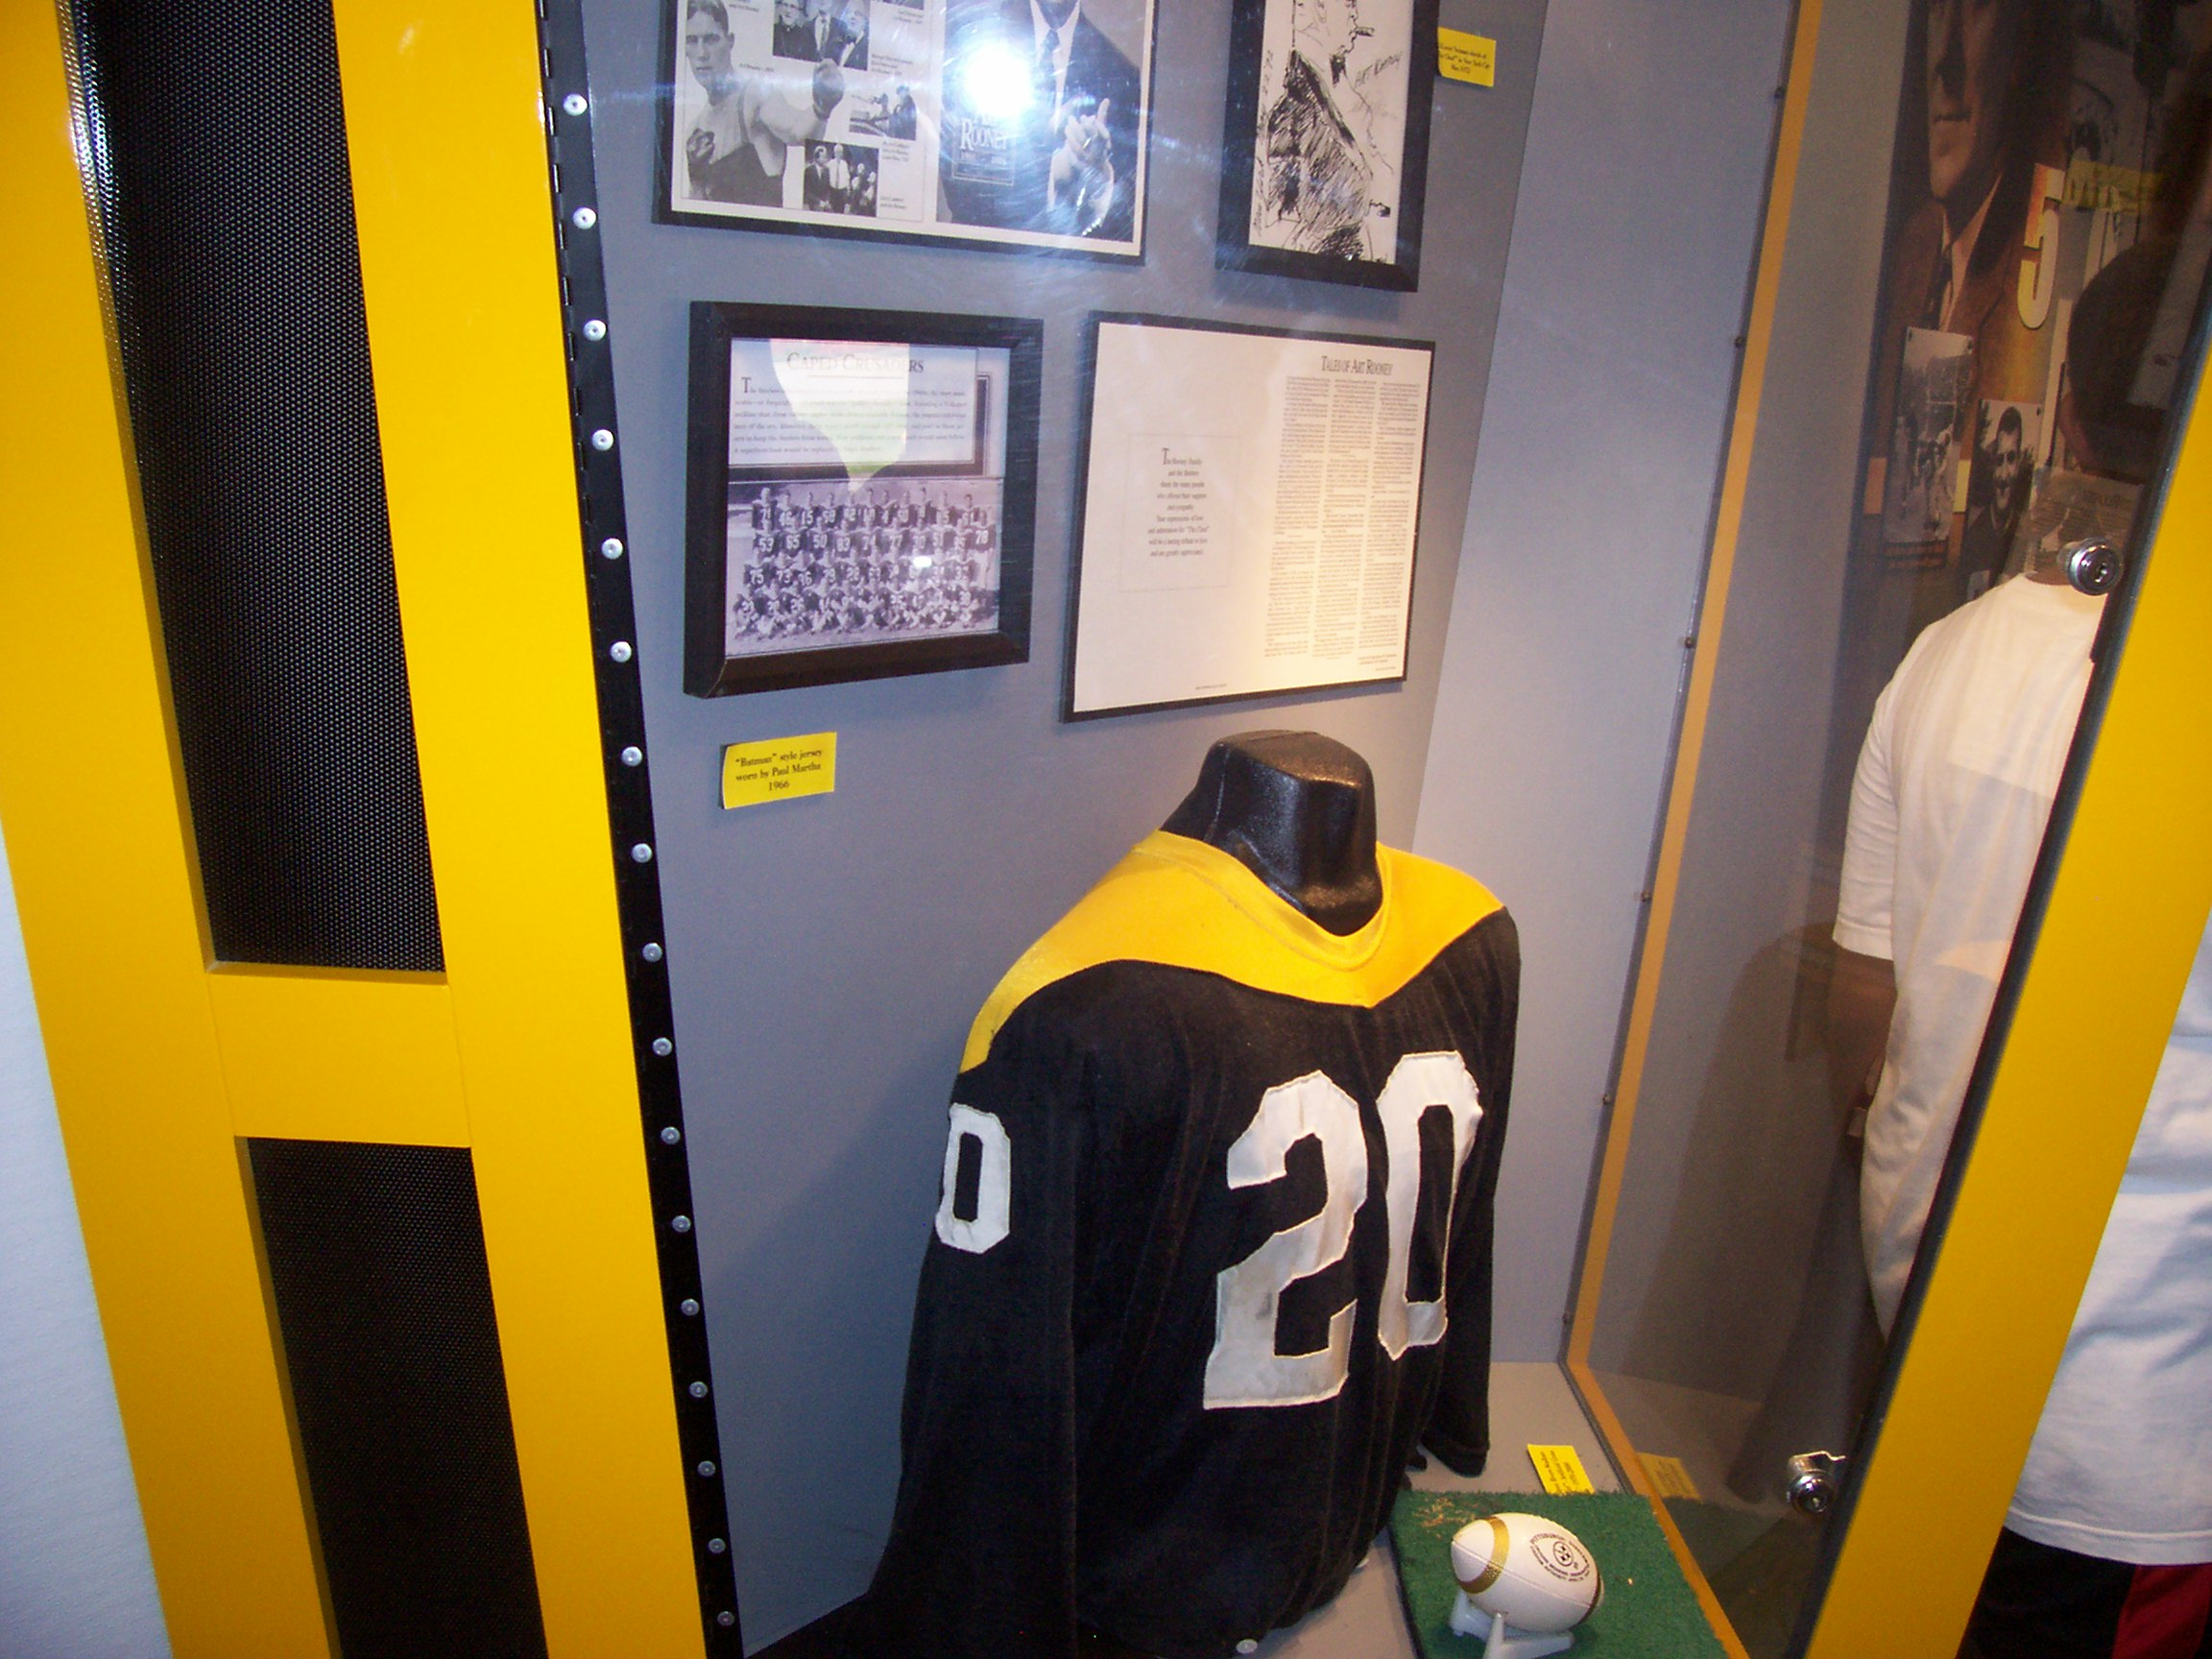 7cb0f7efd55 Steelers looking at Throwback uniforms for 2018 season   steelers